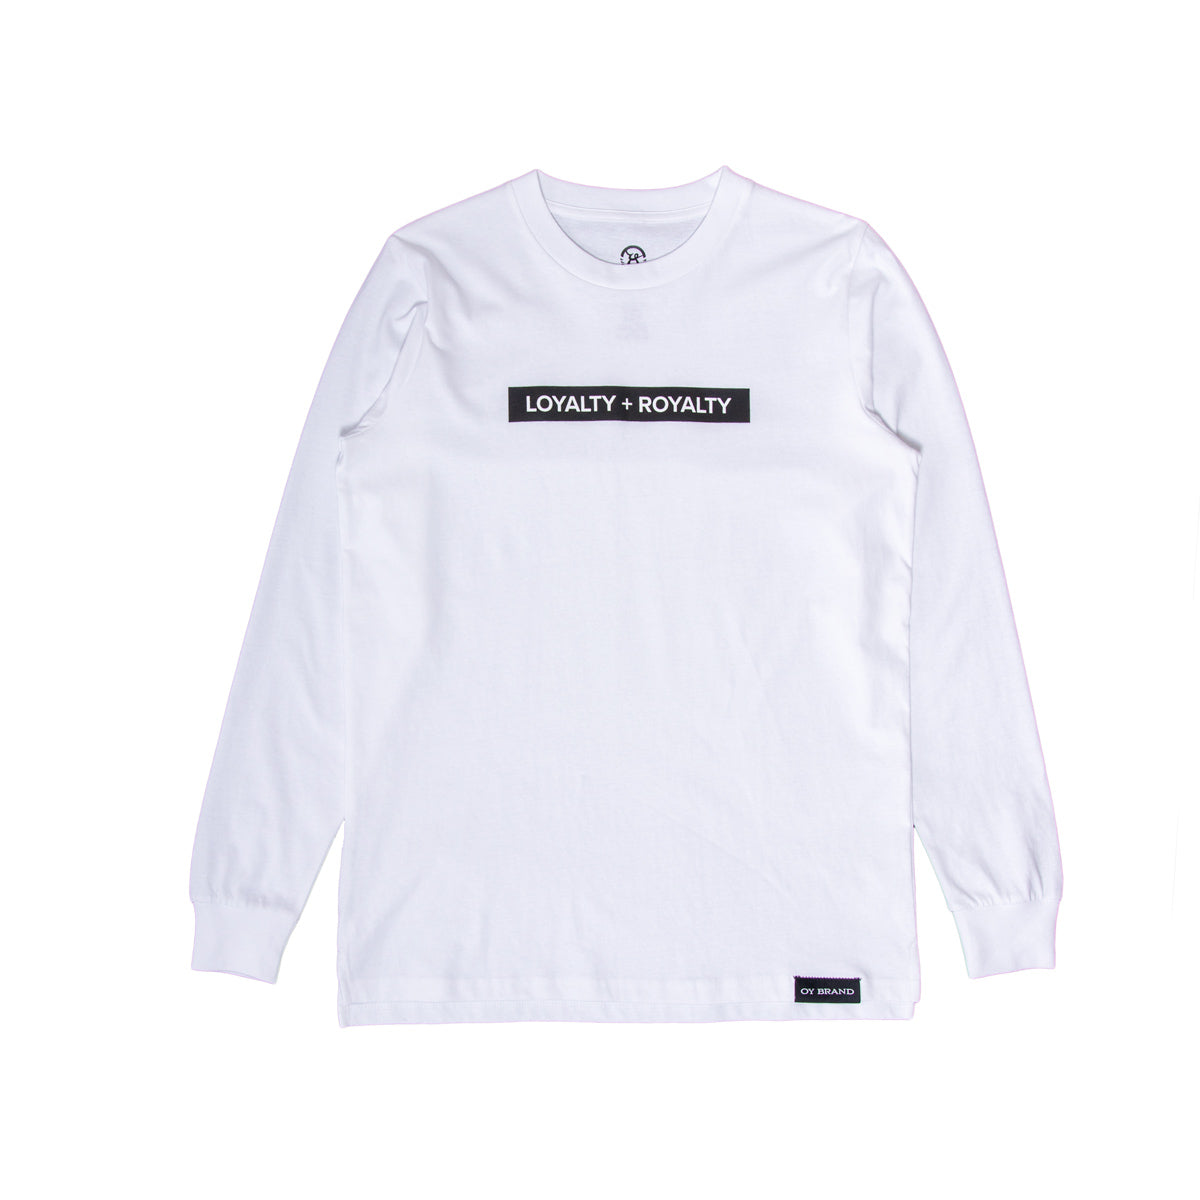 Long Sleeve Loyalty Tee